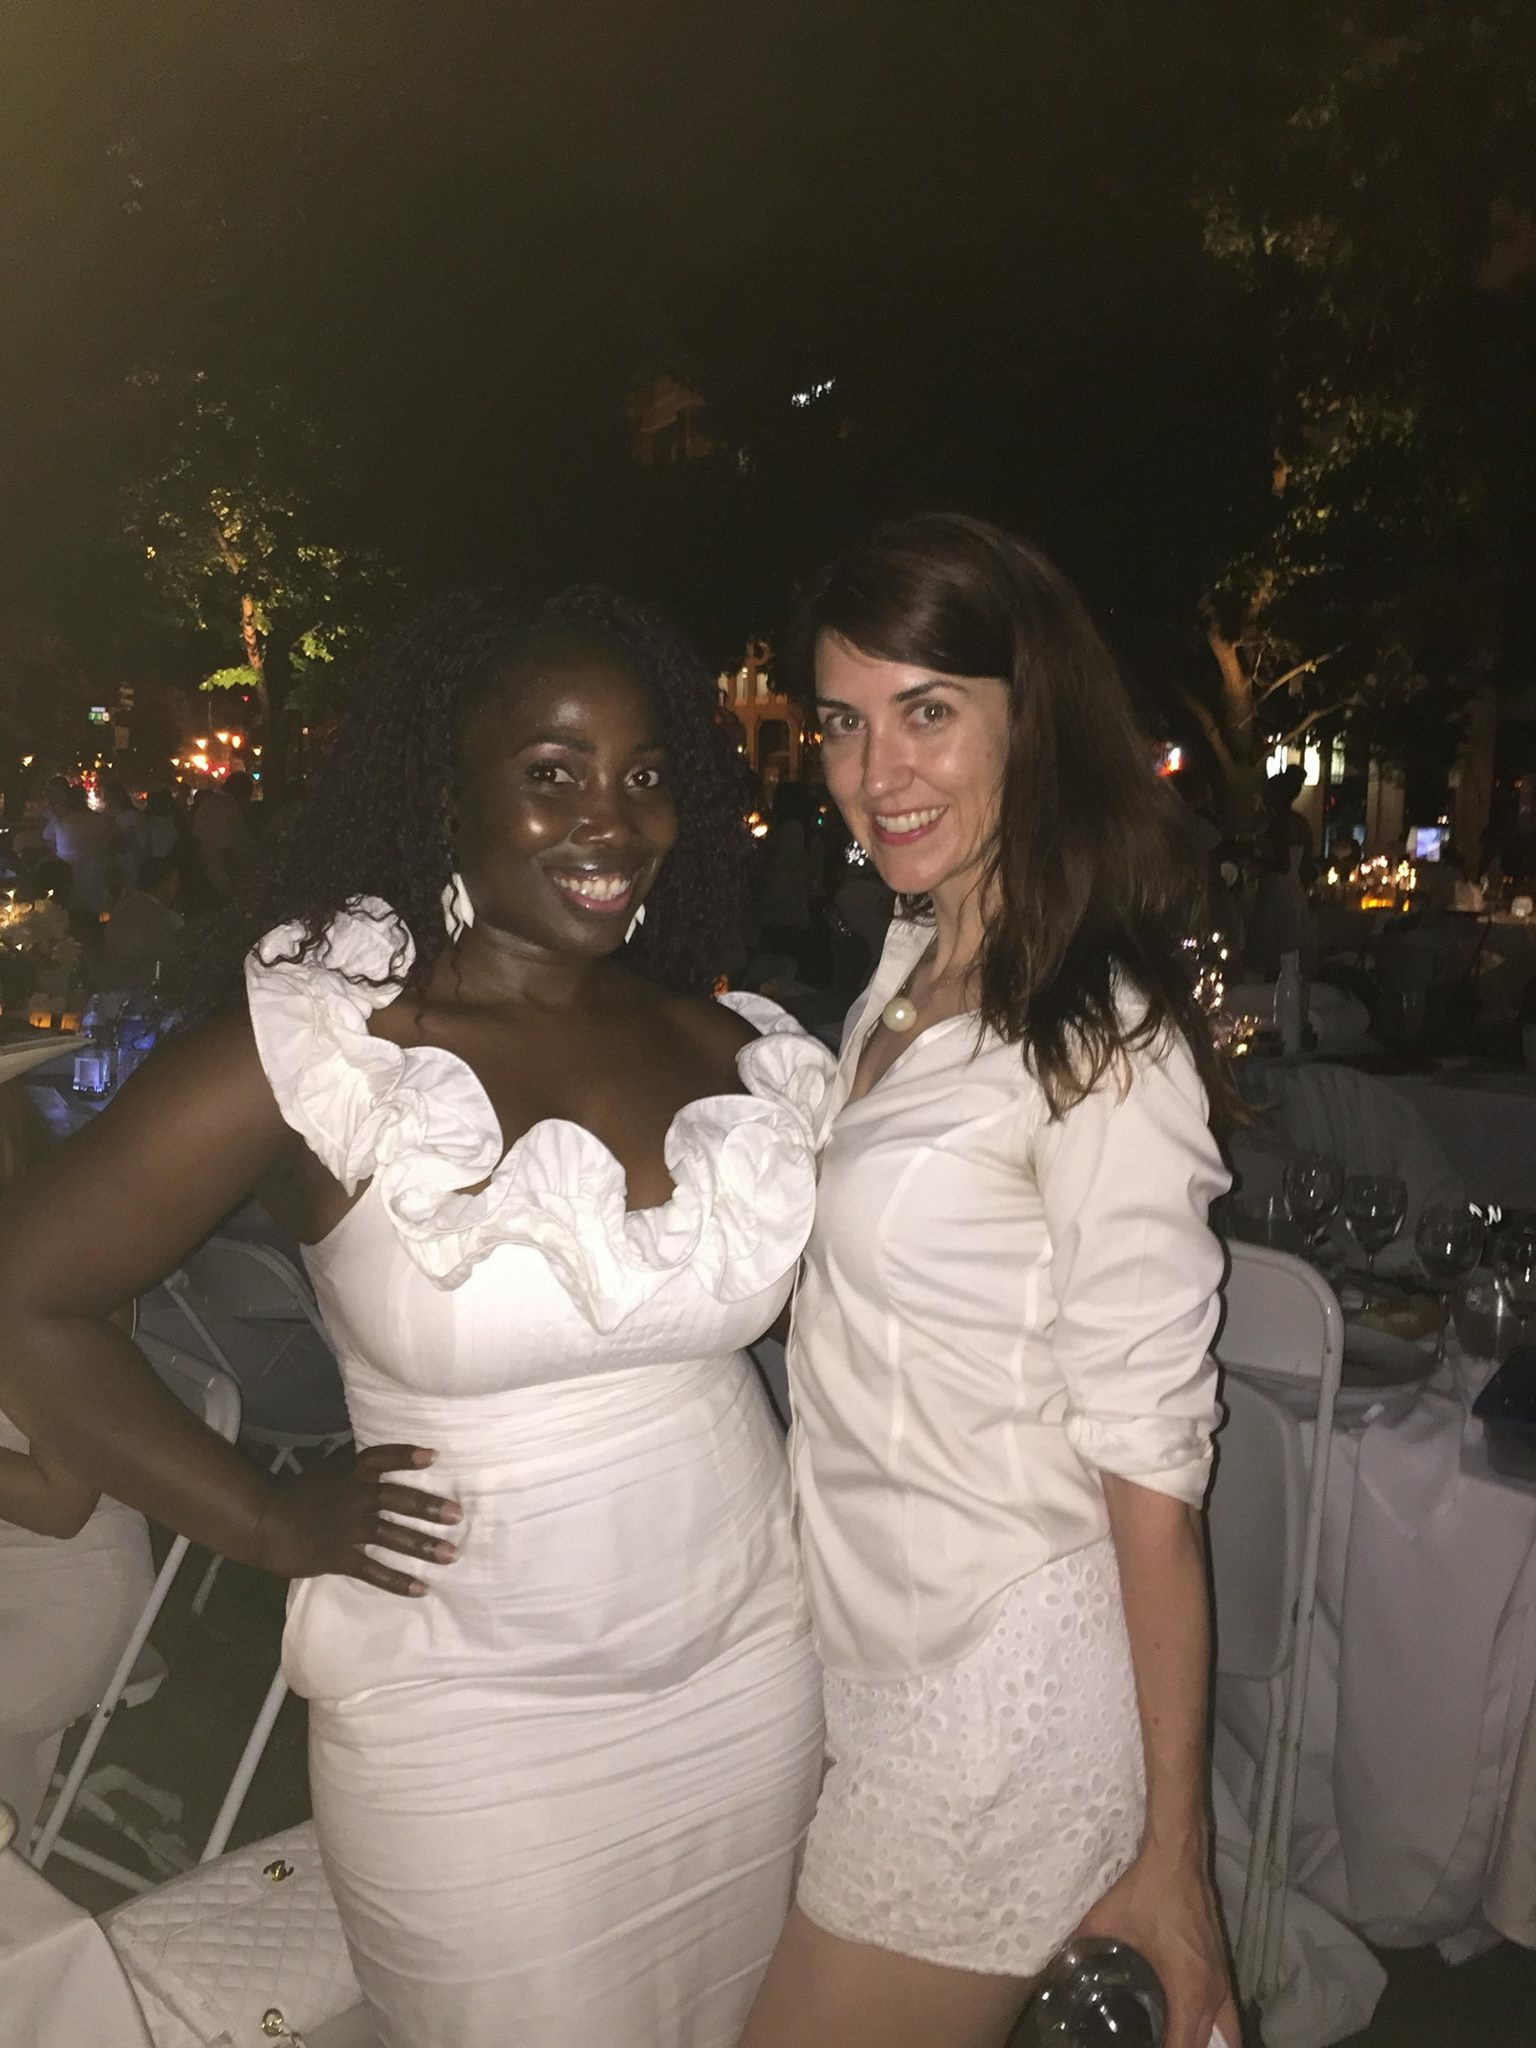 My friends Christelle and Jean (one of the fantastic table leaders). (Photo credit: Christelle)